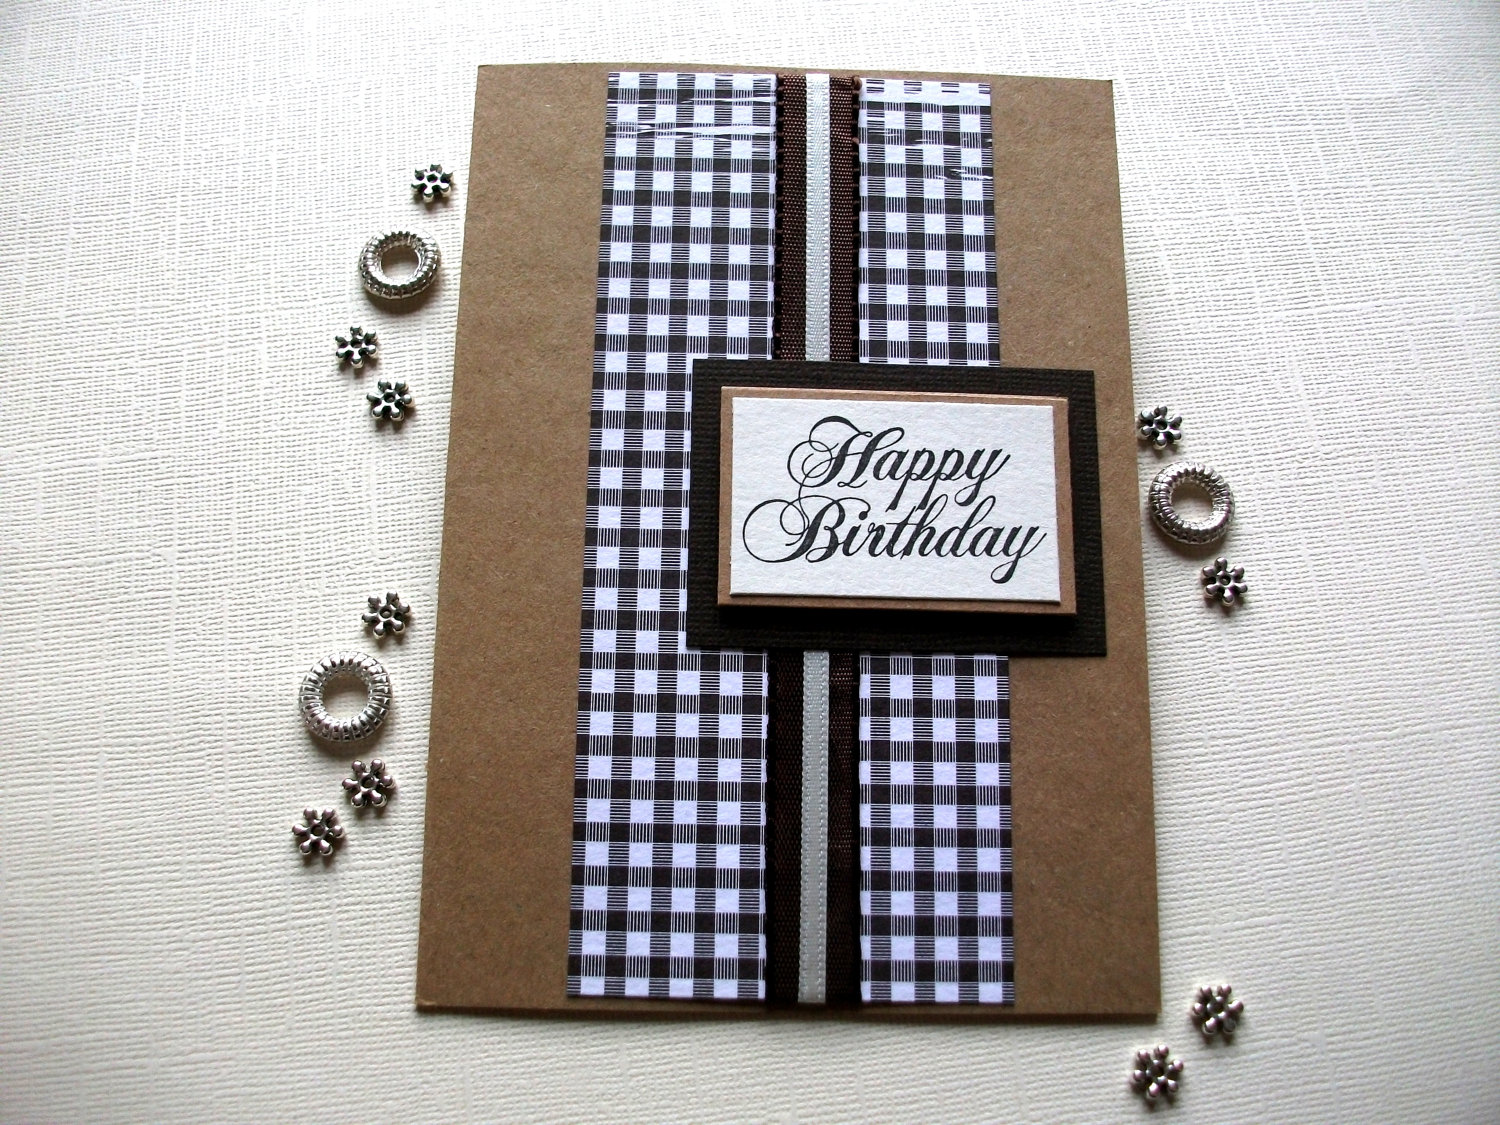 10 Wonderful And Attractive Birthday Cards To Send To Your Beloved